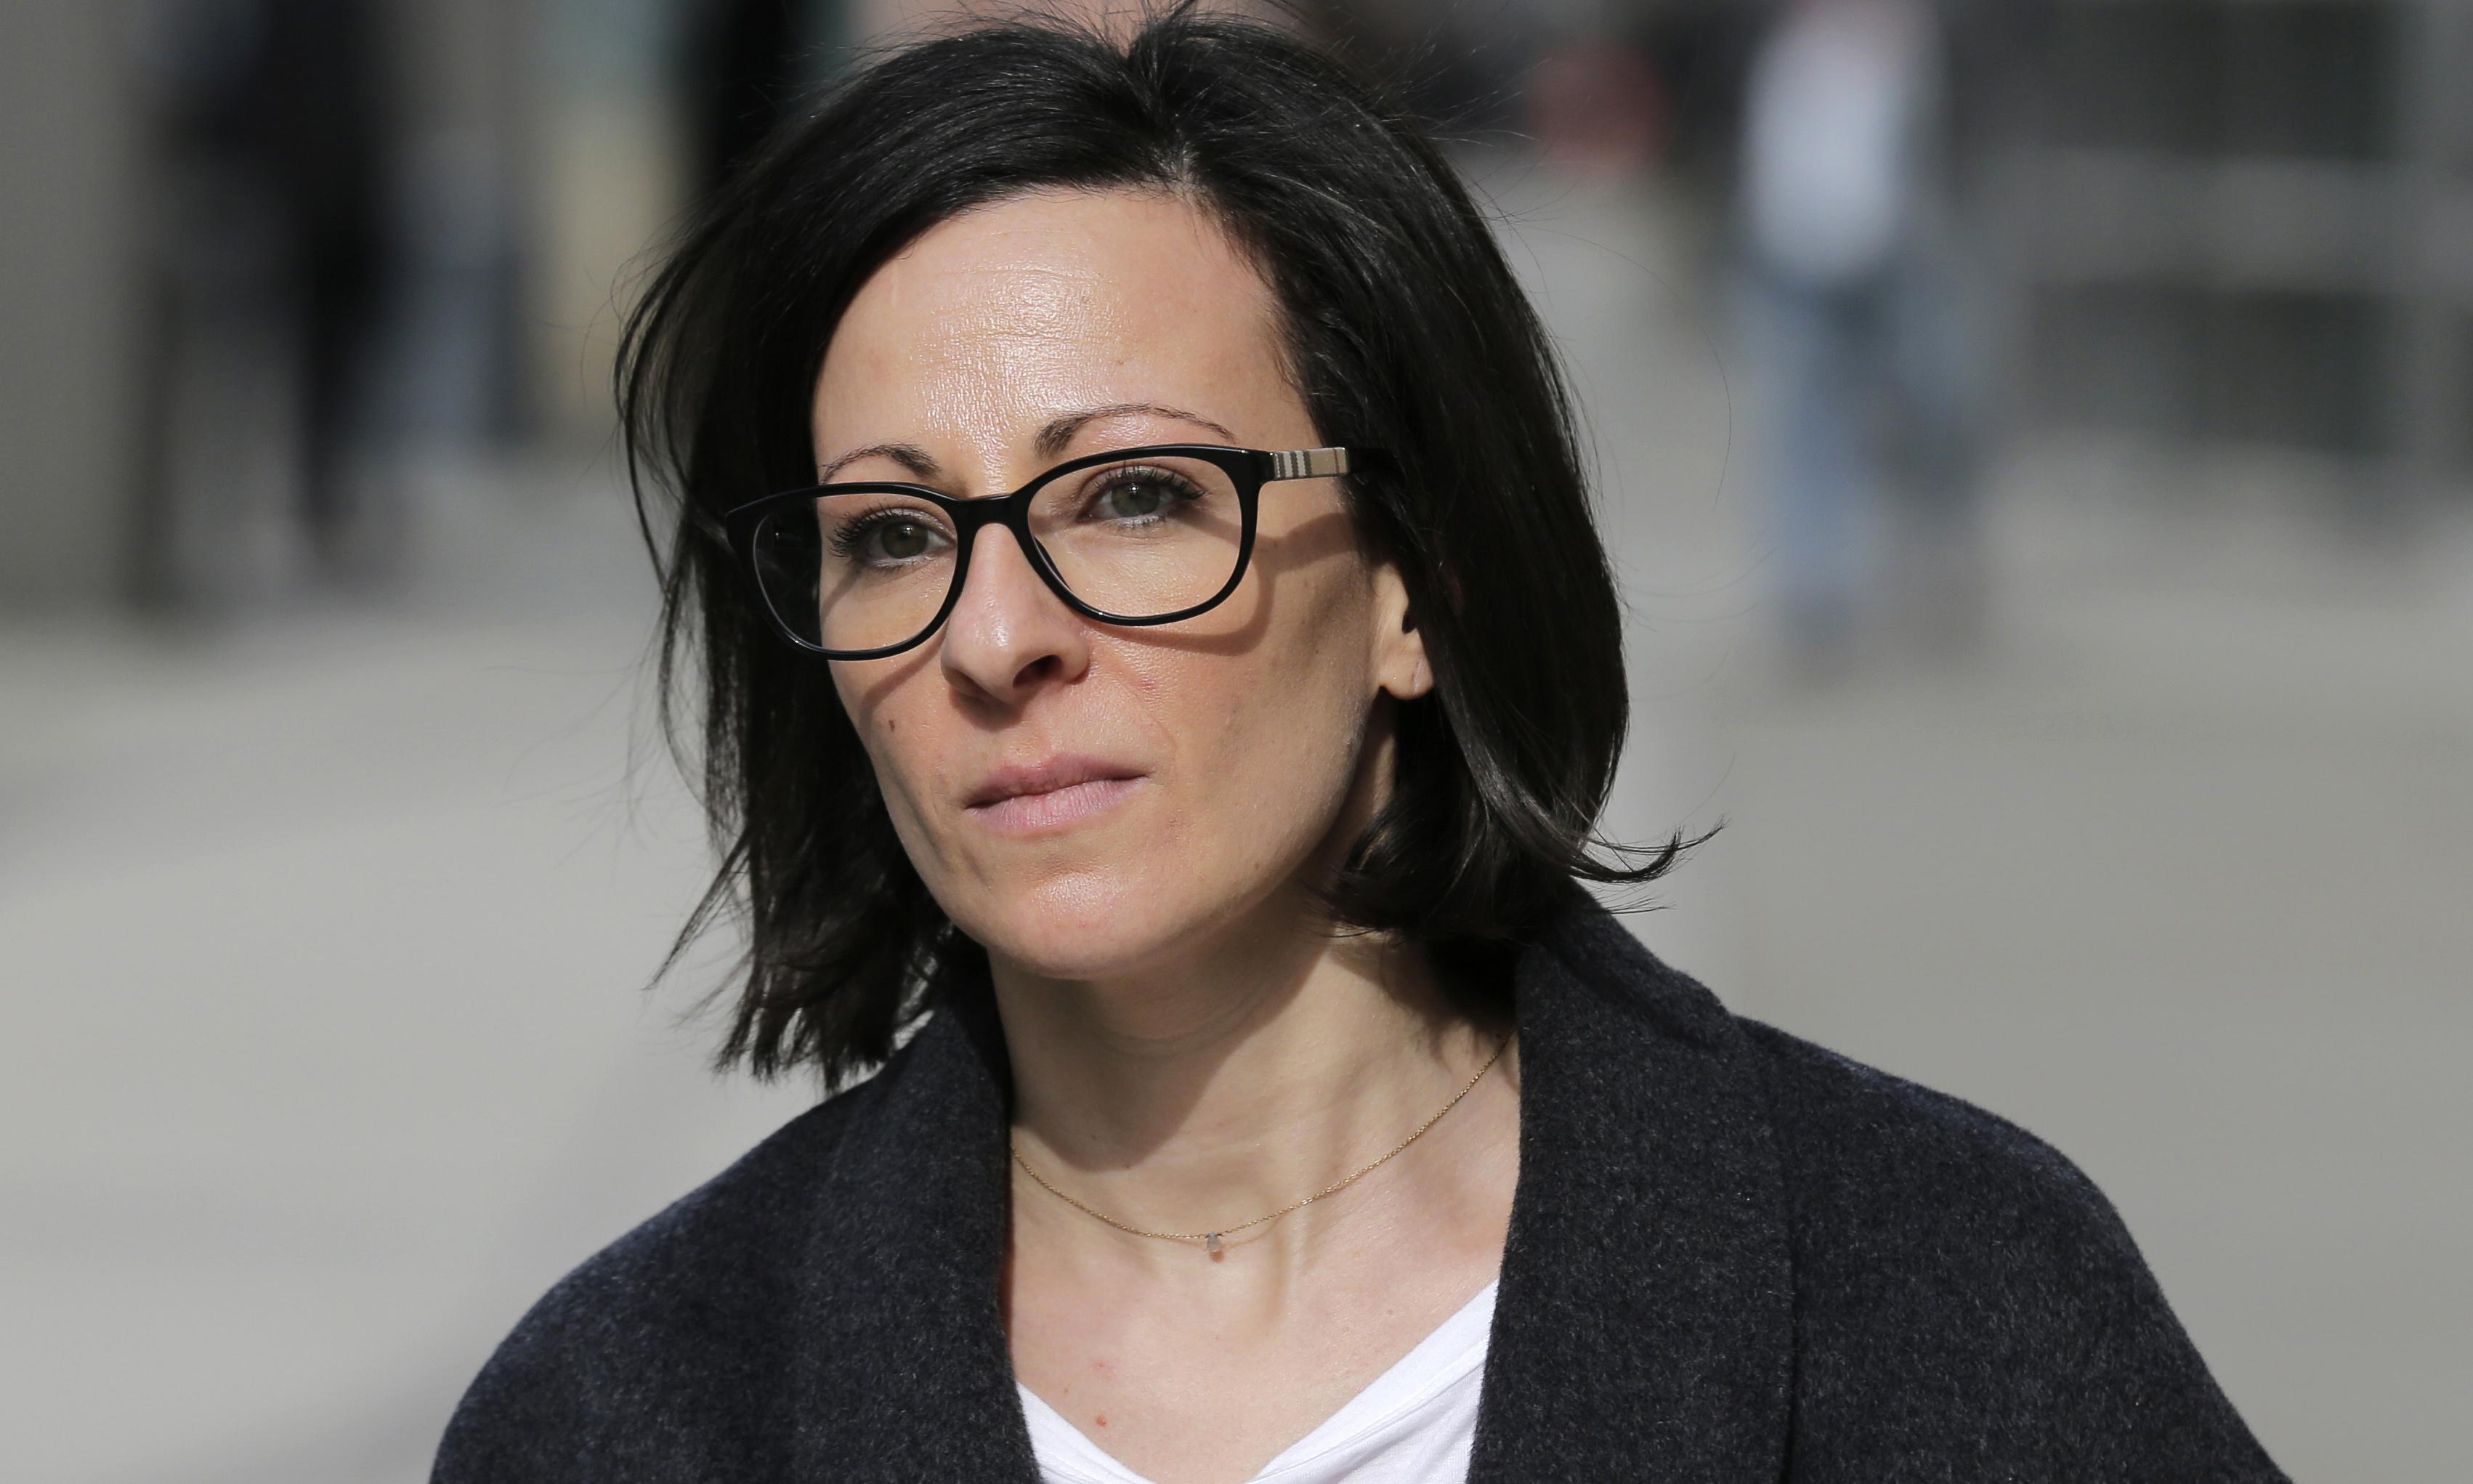 Nxivm trial: Raniere expected women to be as obedient as 'hungry dogs'